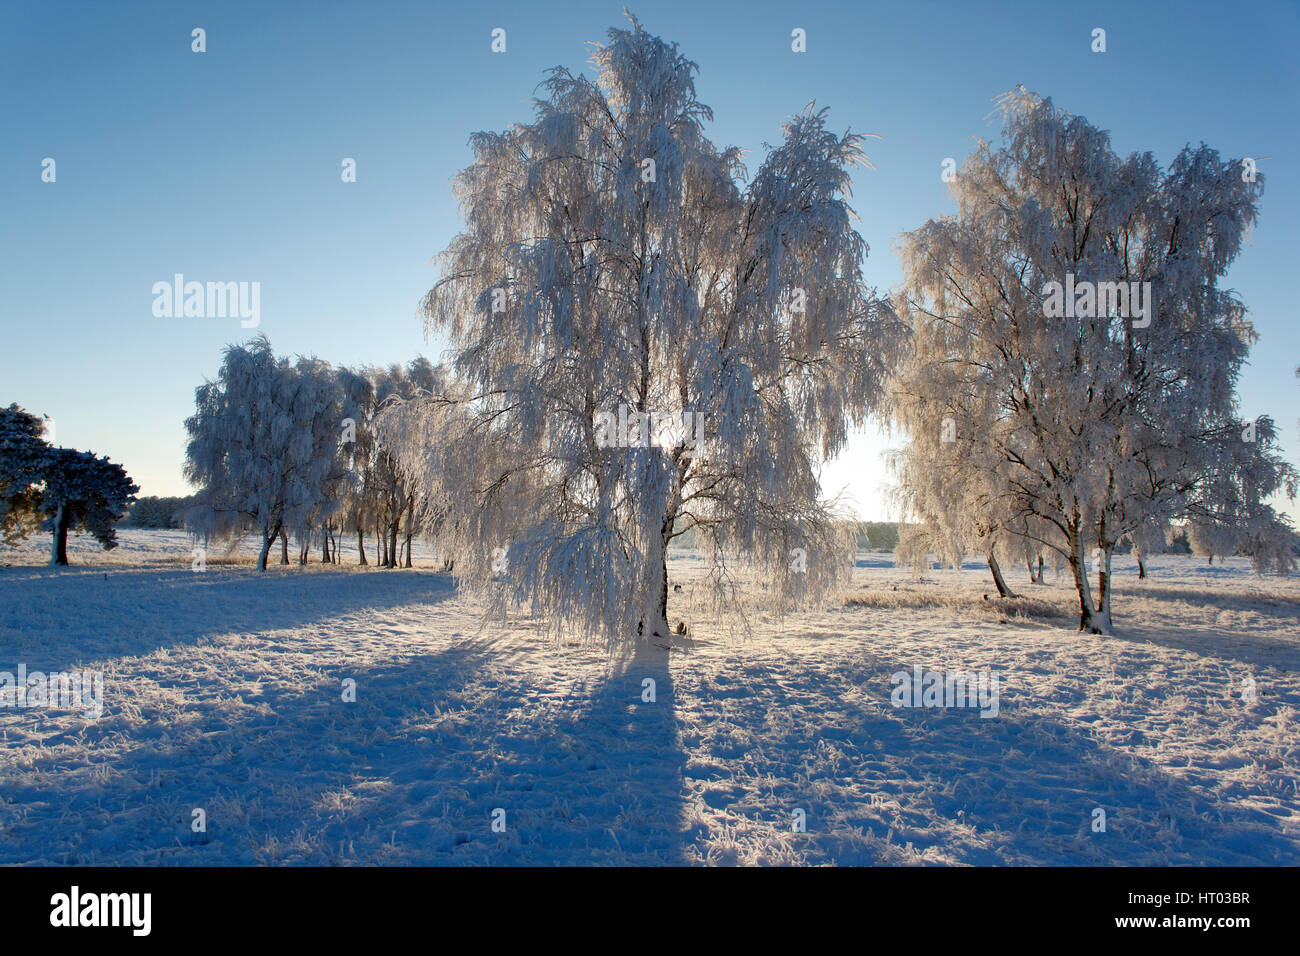 Backlit Silver Birch Trees covered in white hoar frost and snow, Thetford Forest Suffolk - Stock Image